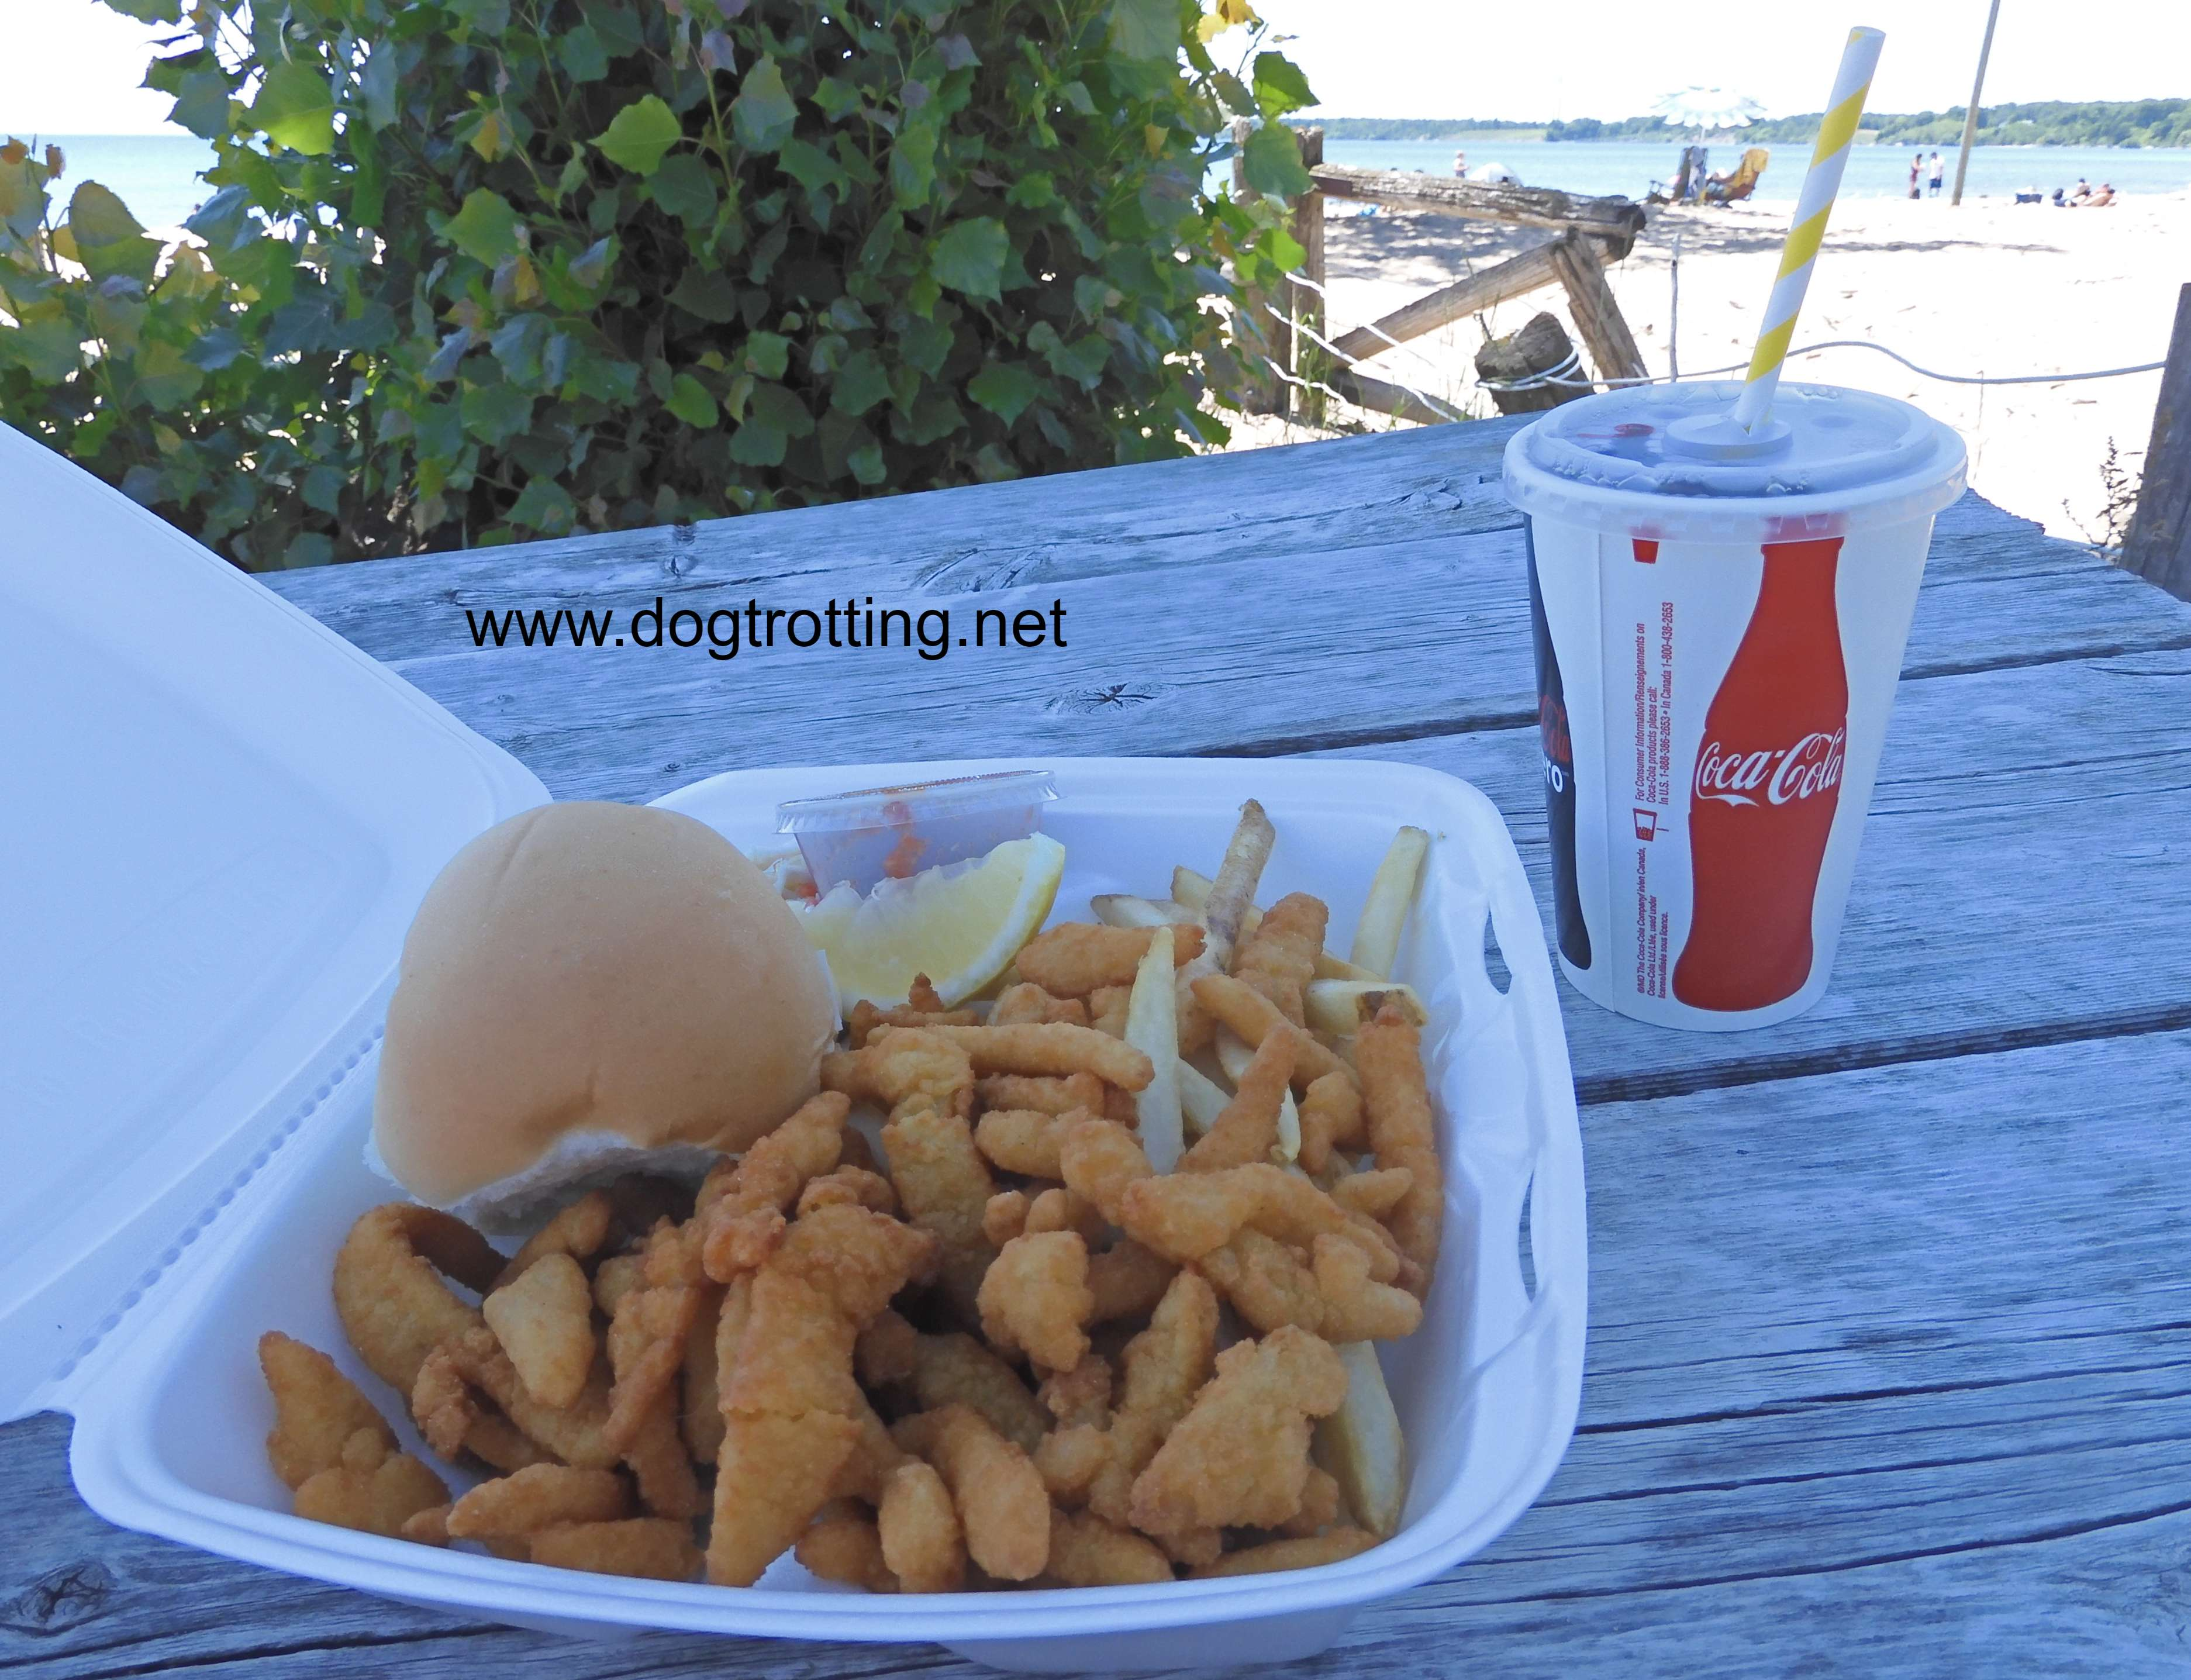 Clam strips and fries in plastic container on table at beach in Port Dover, Ontario, Canada